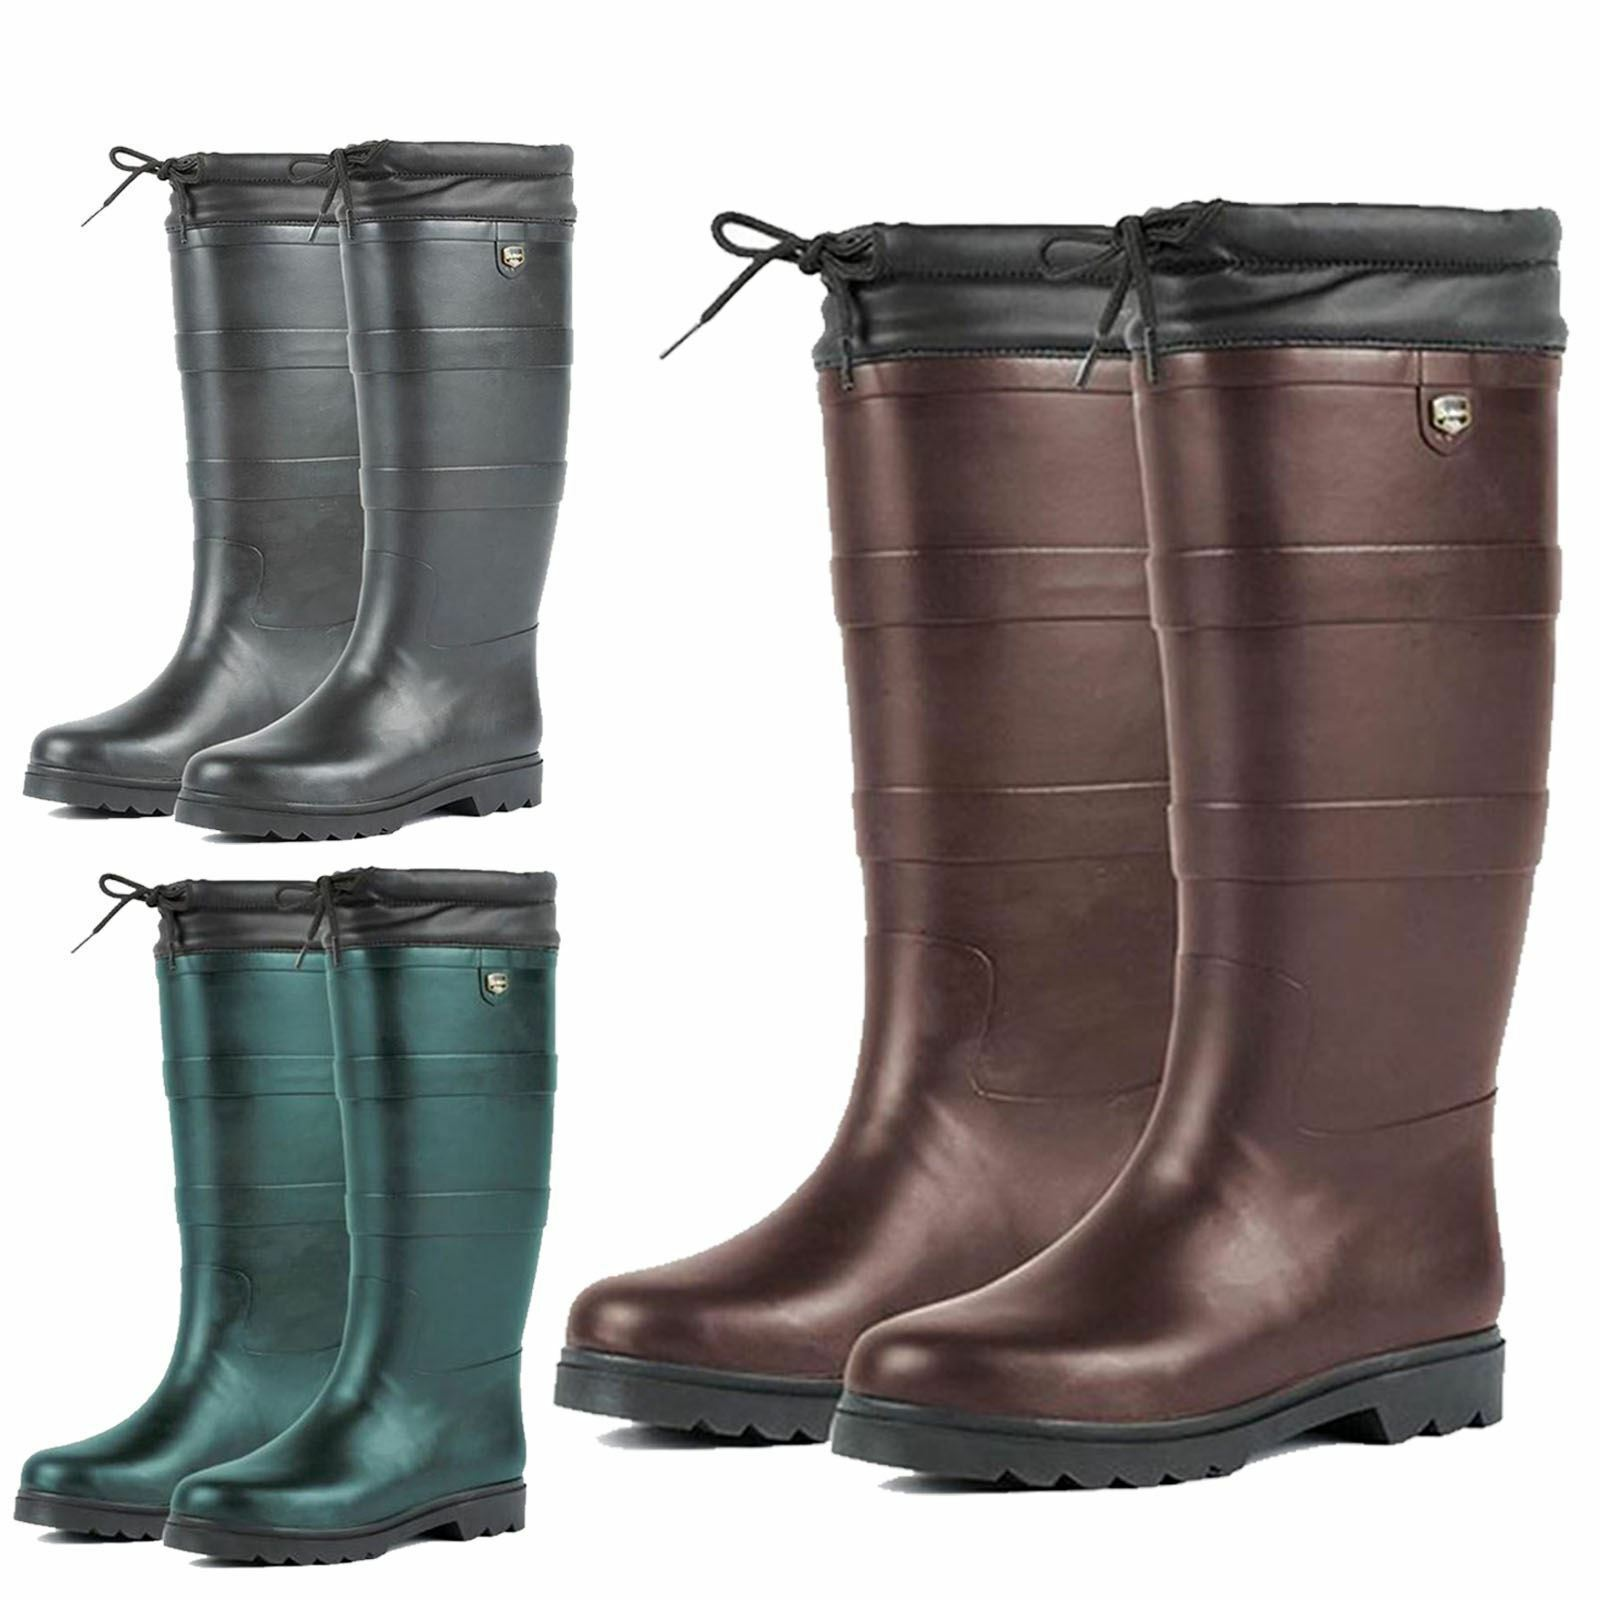 Adults Dublin Outdoor Waterproof Neoprene Rain Country Wellington Boots